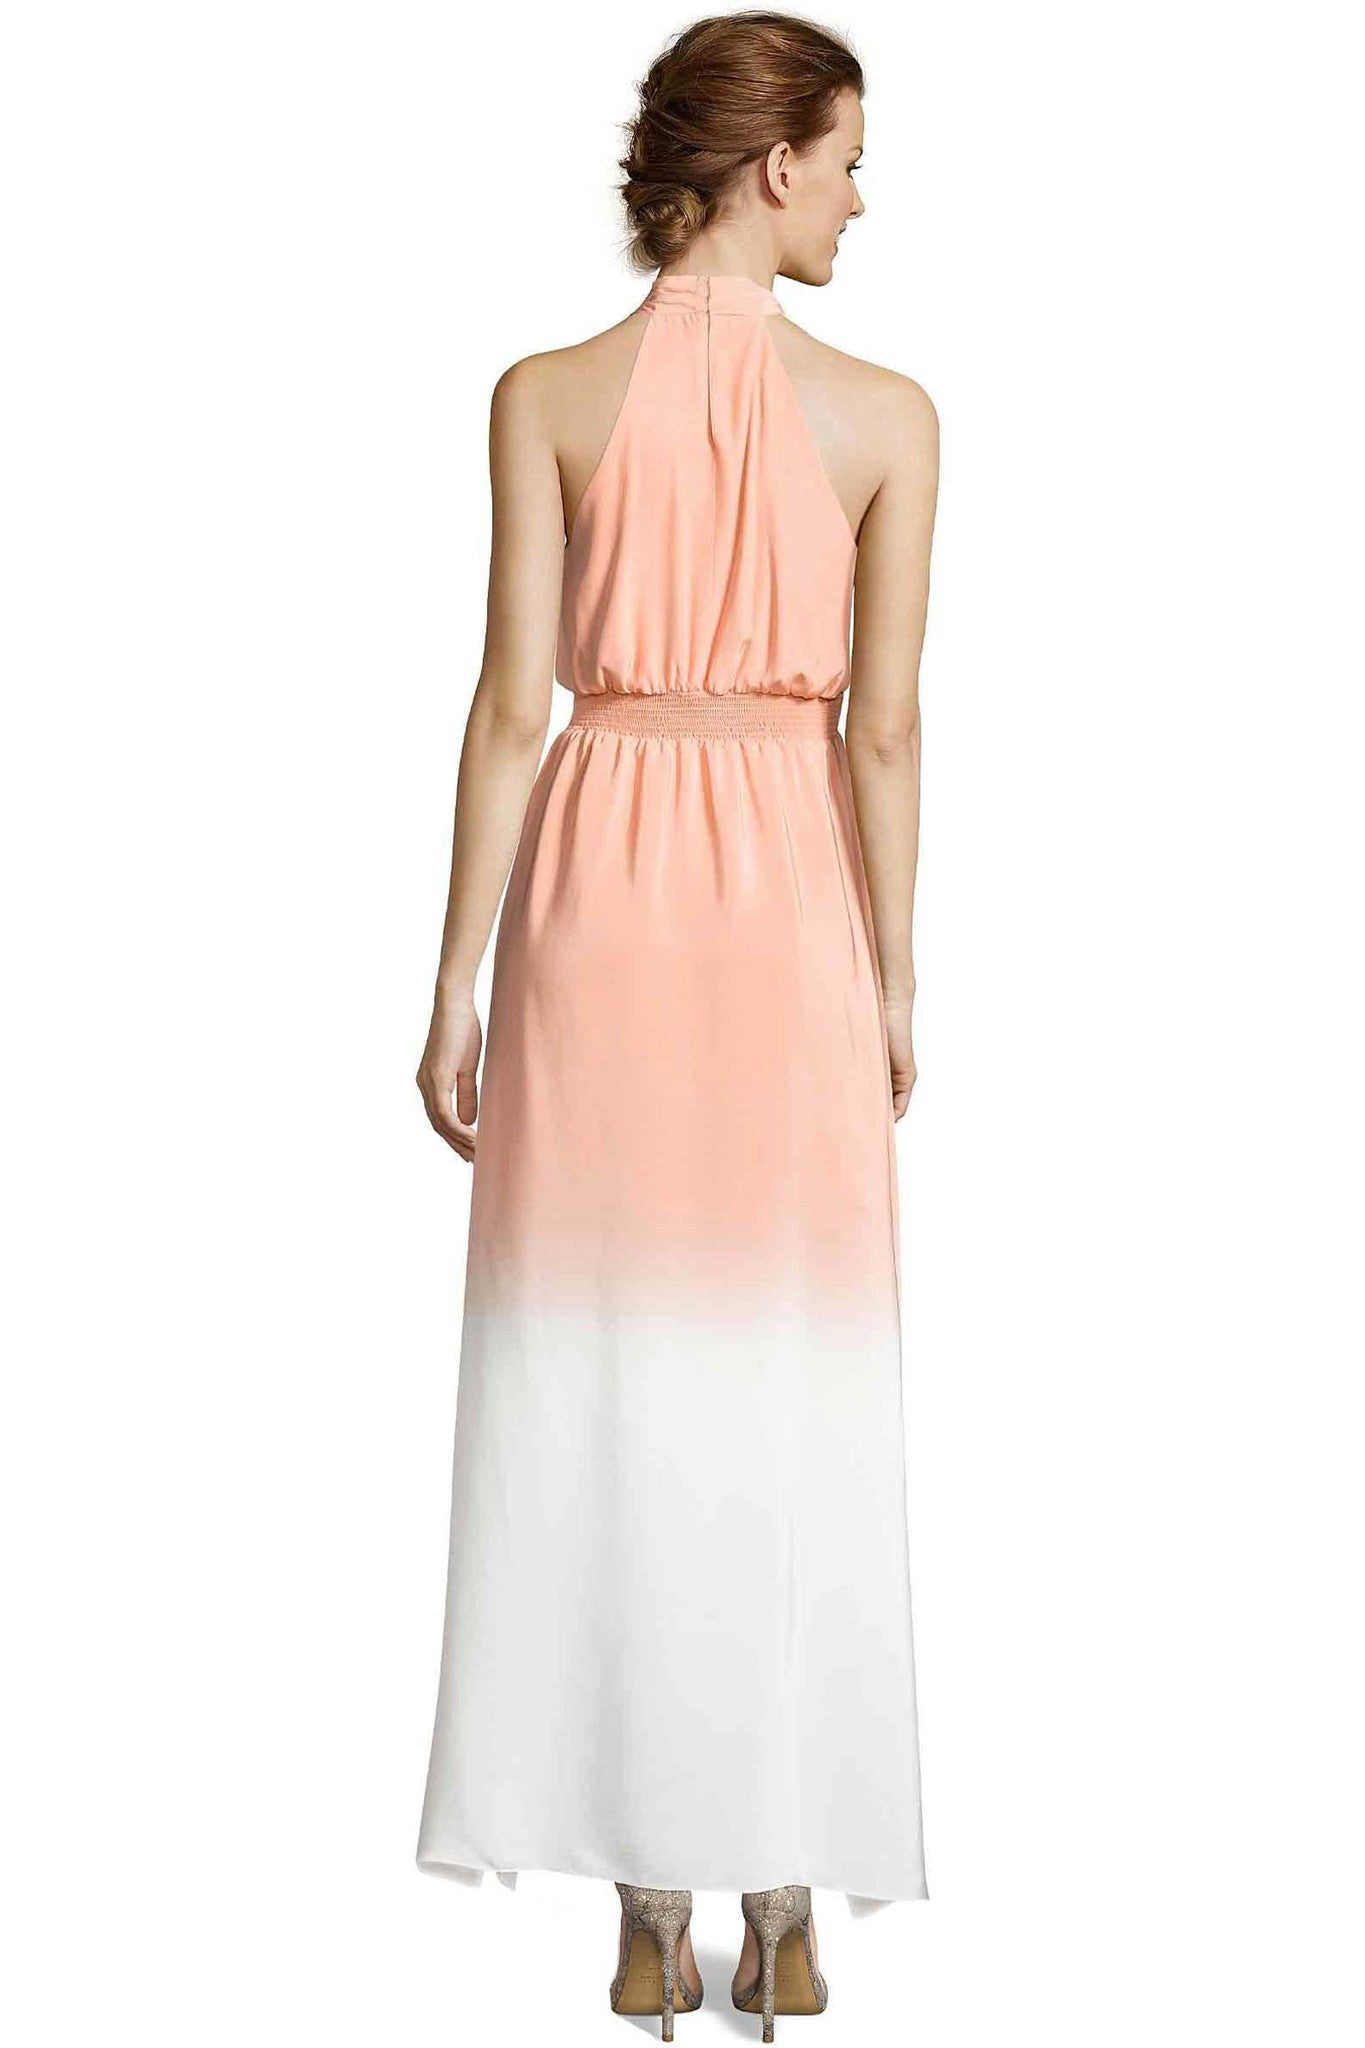 Jay Godfrey Ombre Orange Halter Dress - Back View